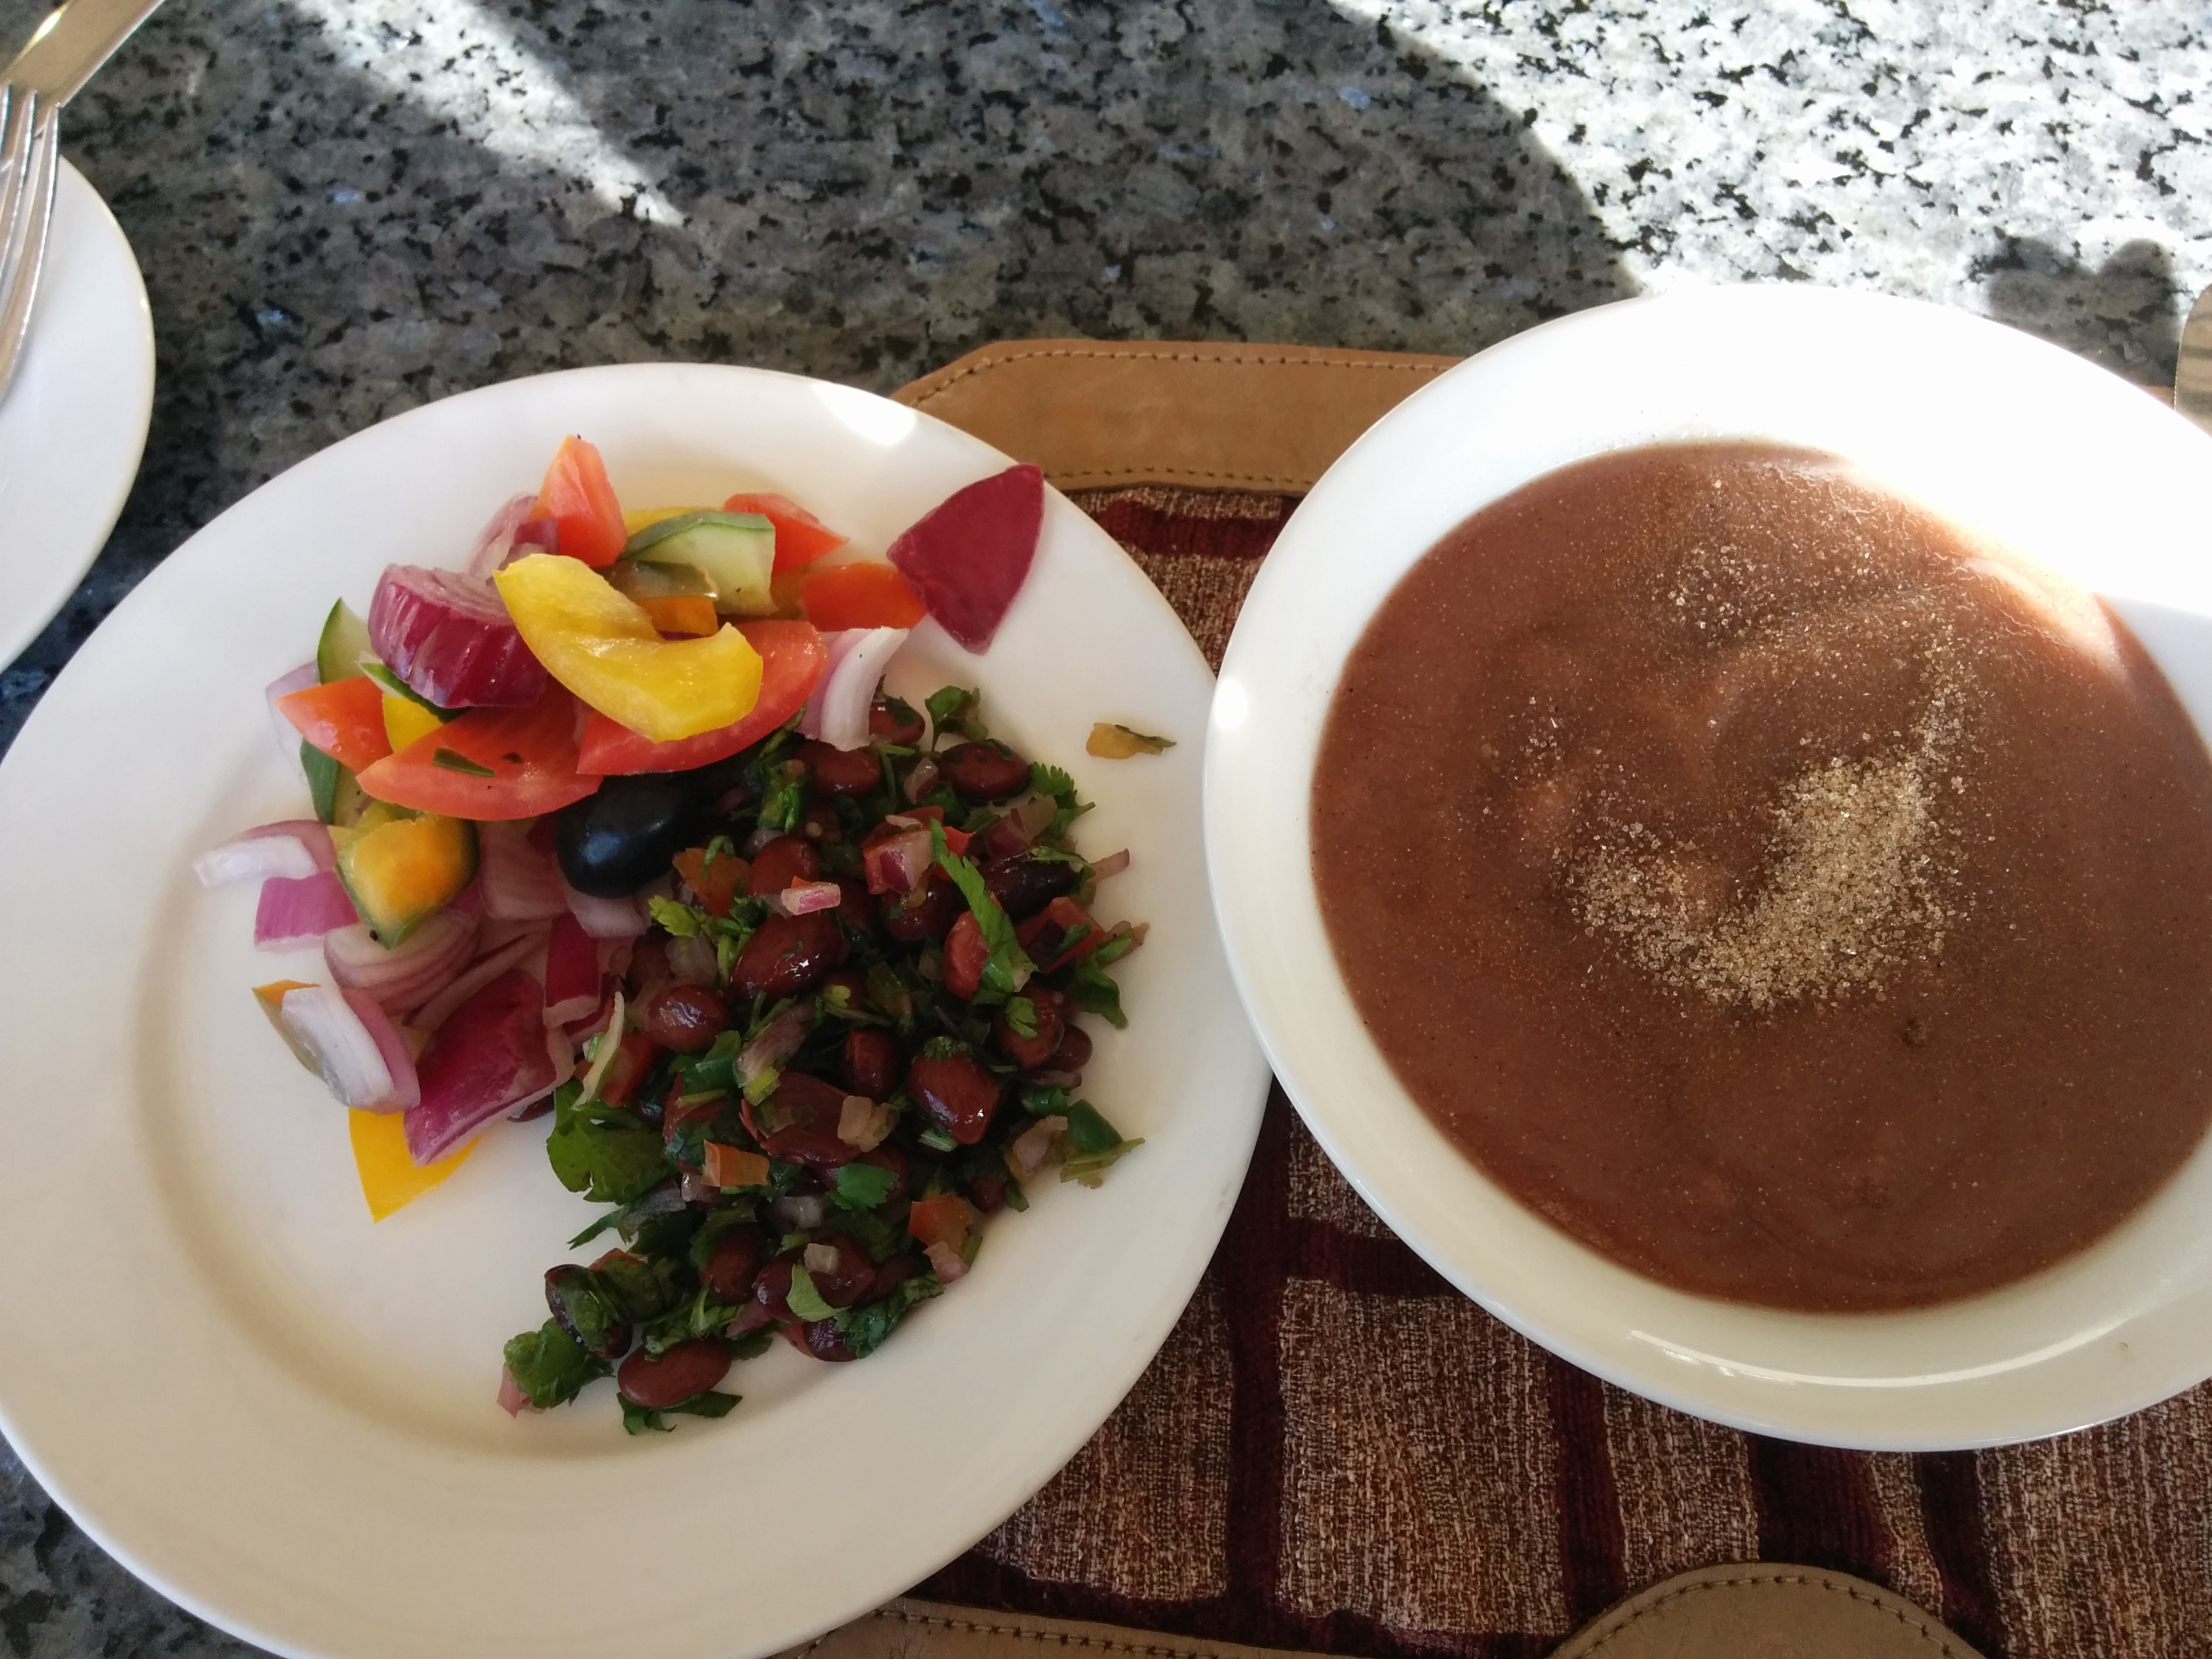 Ragi porridge with BrownSugar and a Kidney Bean salad with Vegetables